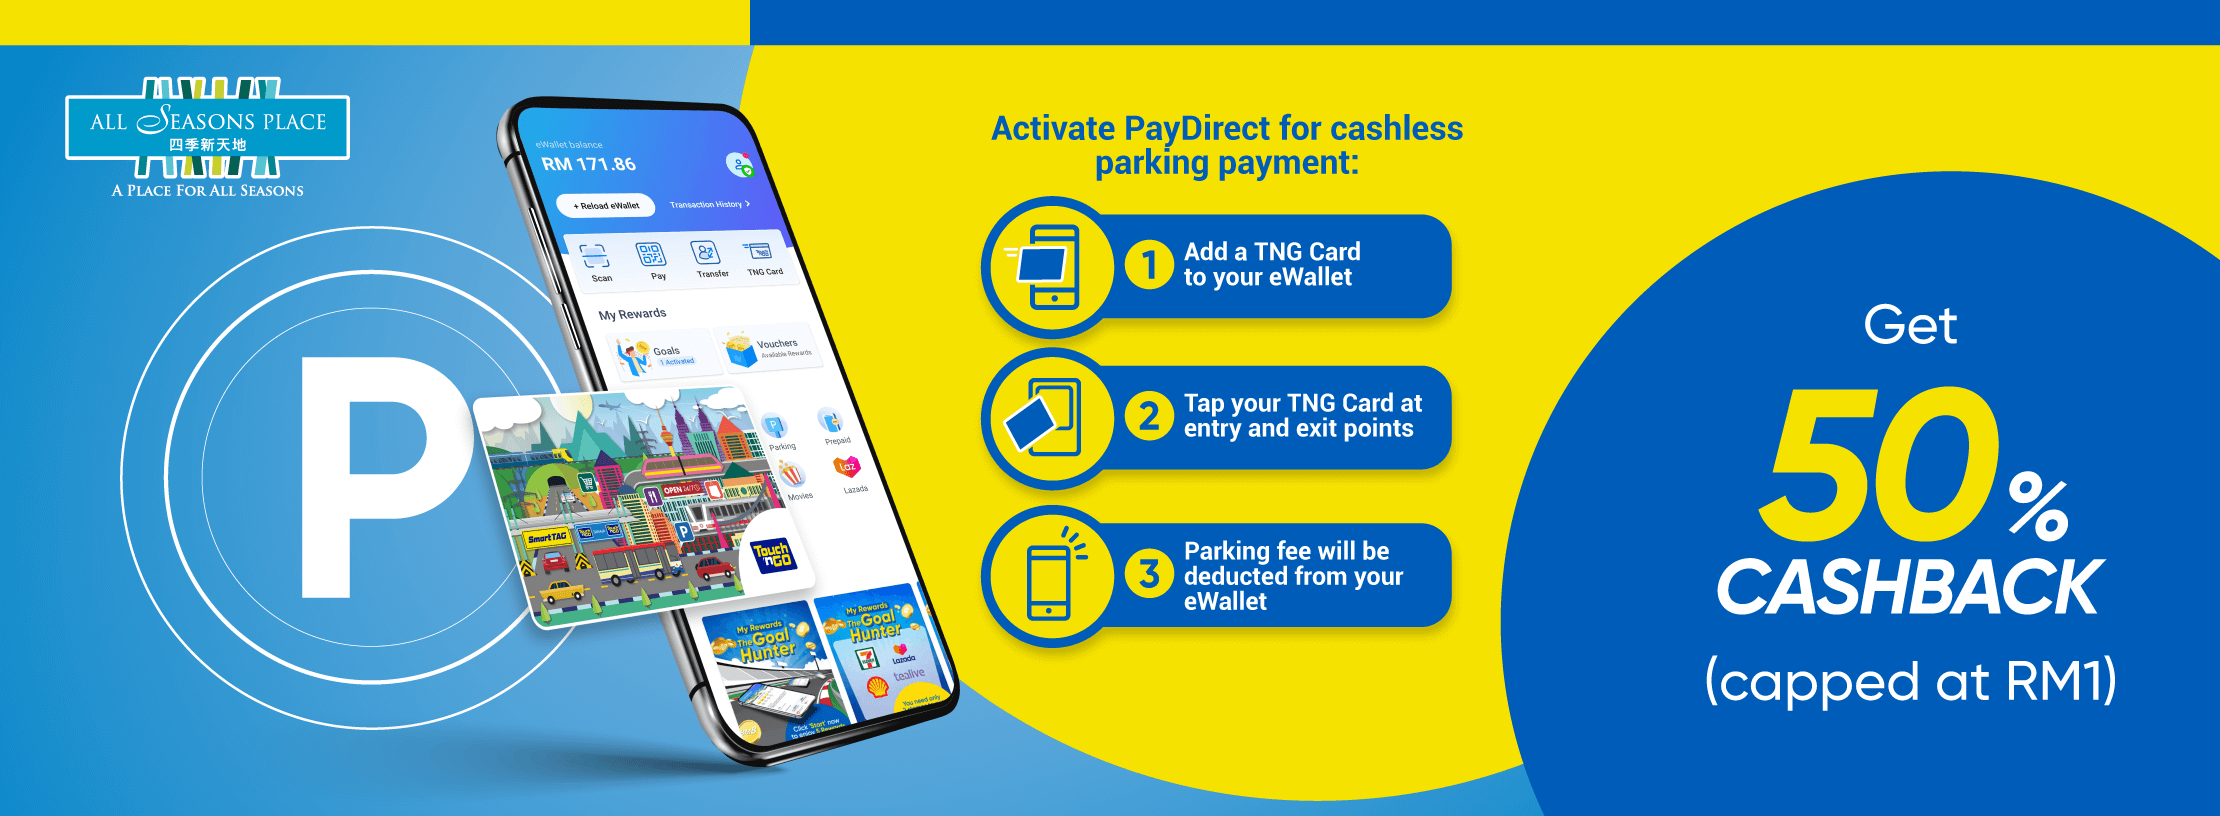 PayDirect Parking at All Season Place: 50% Cashback